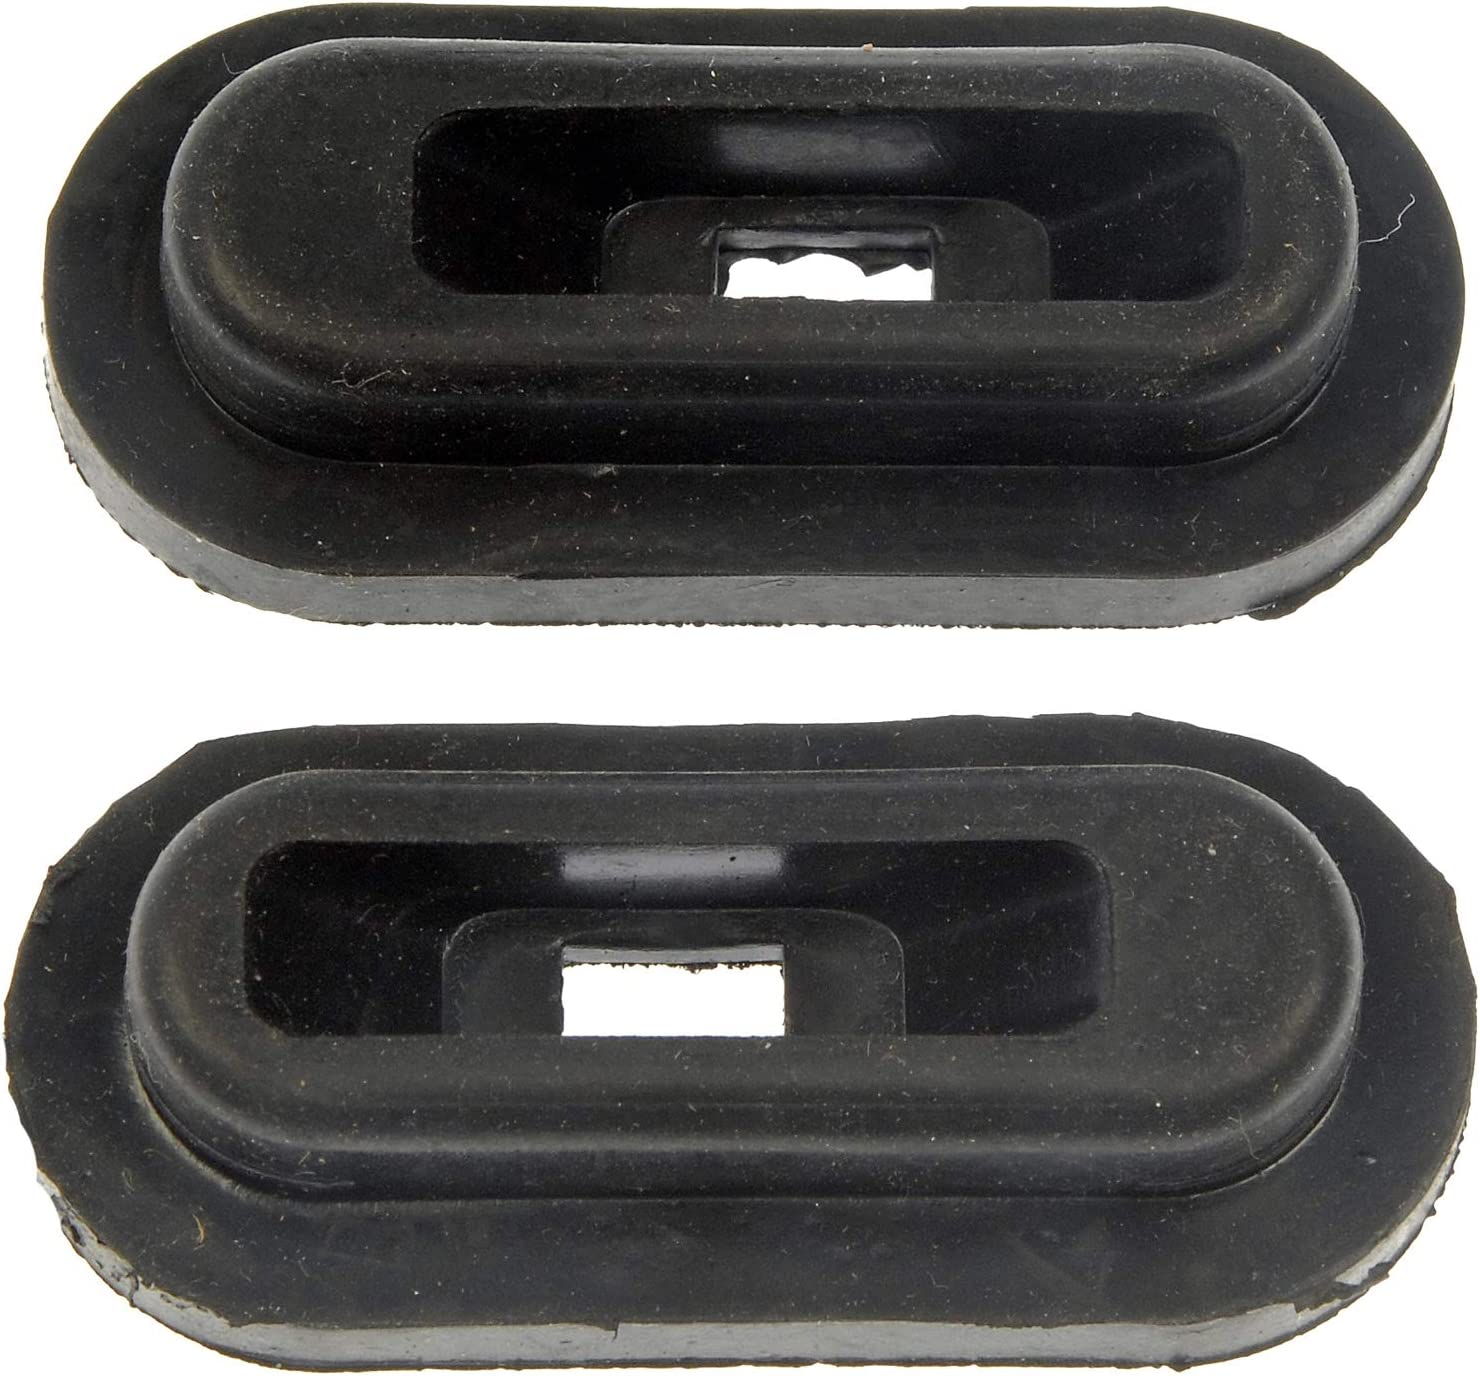 Dorman 924-002 Brake Dust Shield